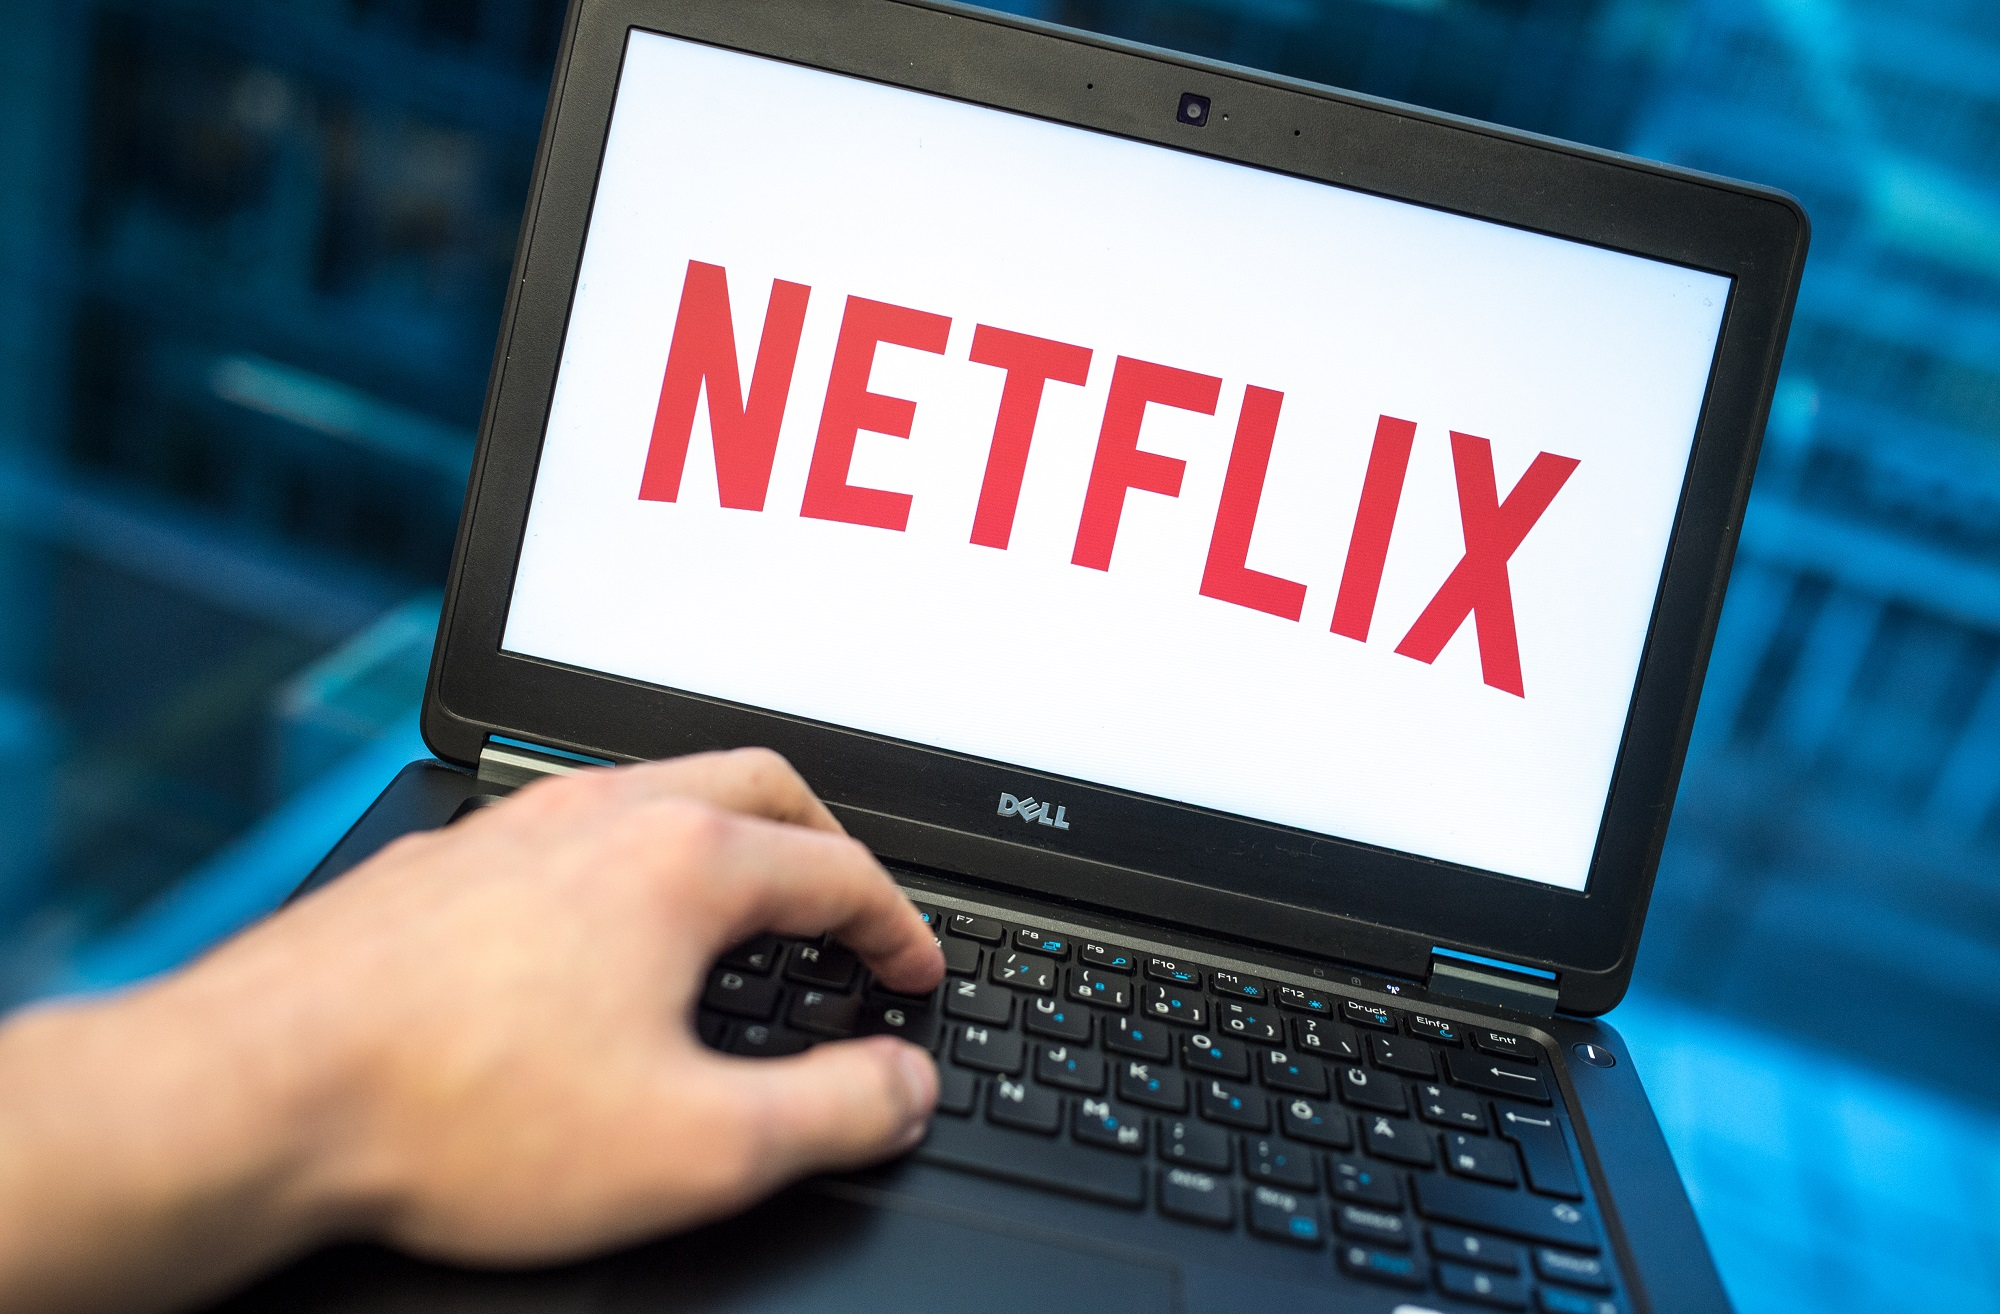 Netflix Urges Users Not To Take The P*** When It Comes To Sharing Accounts